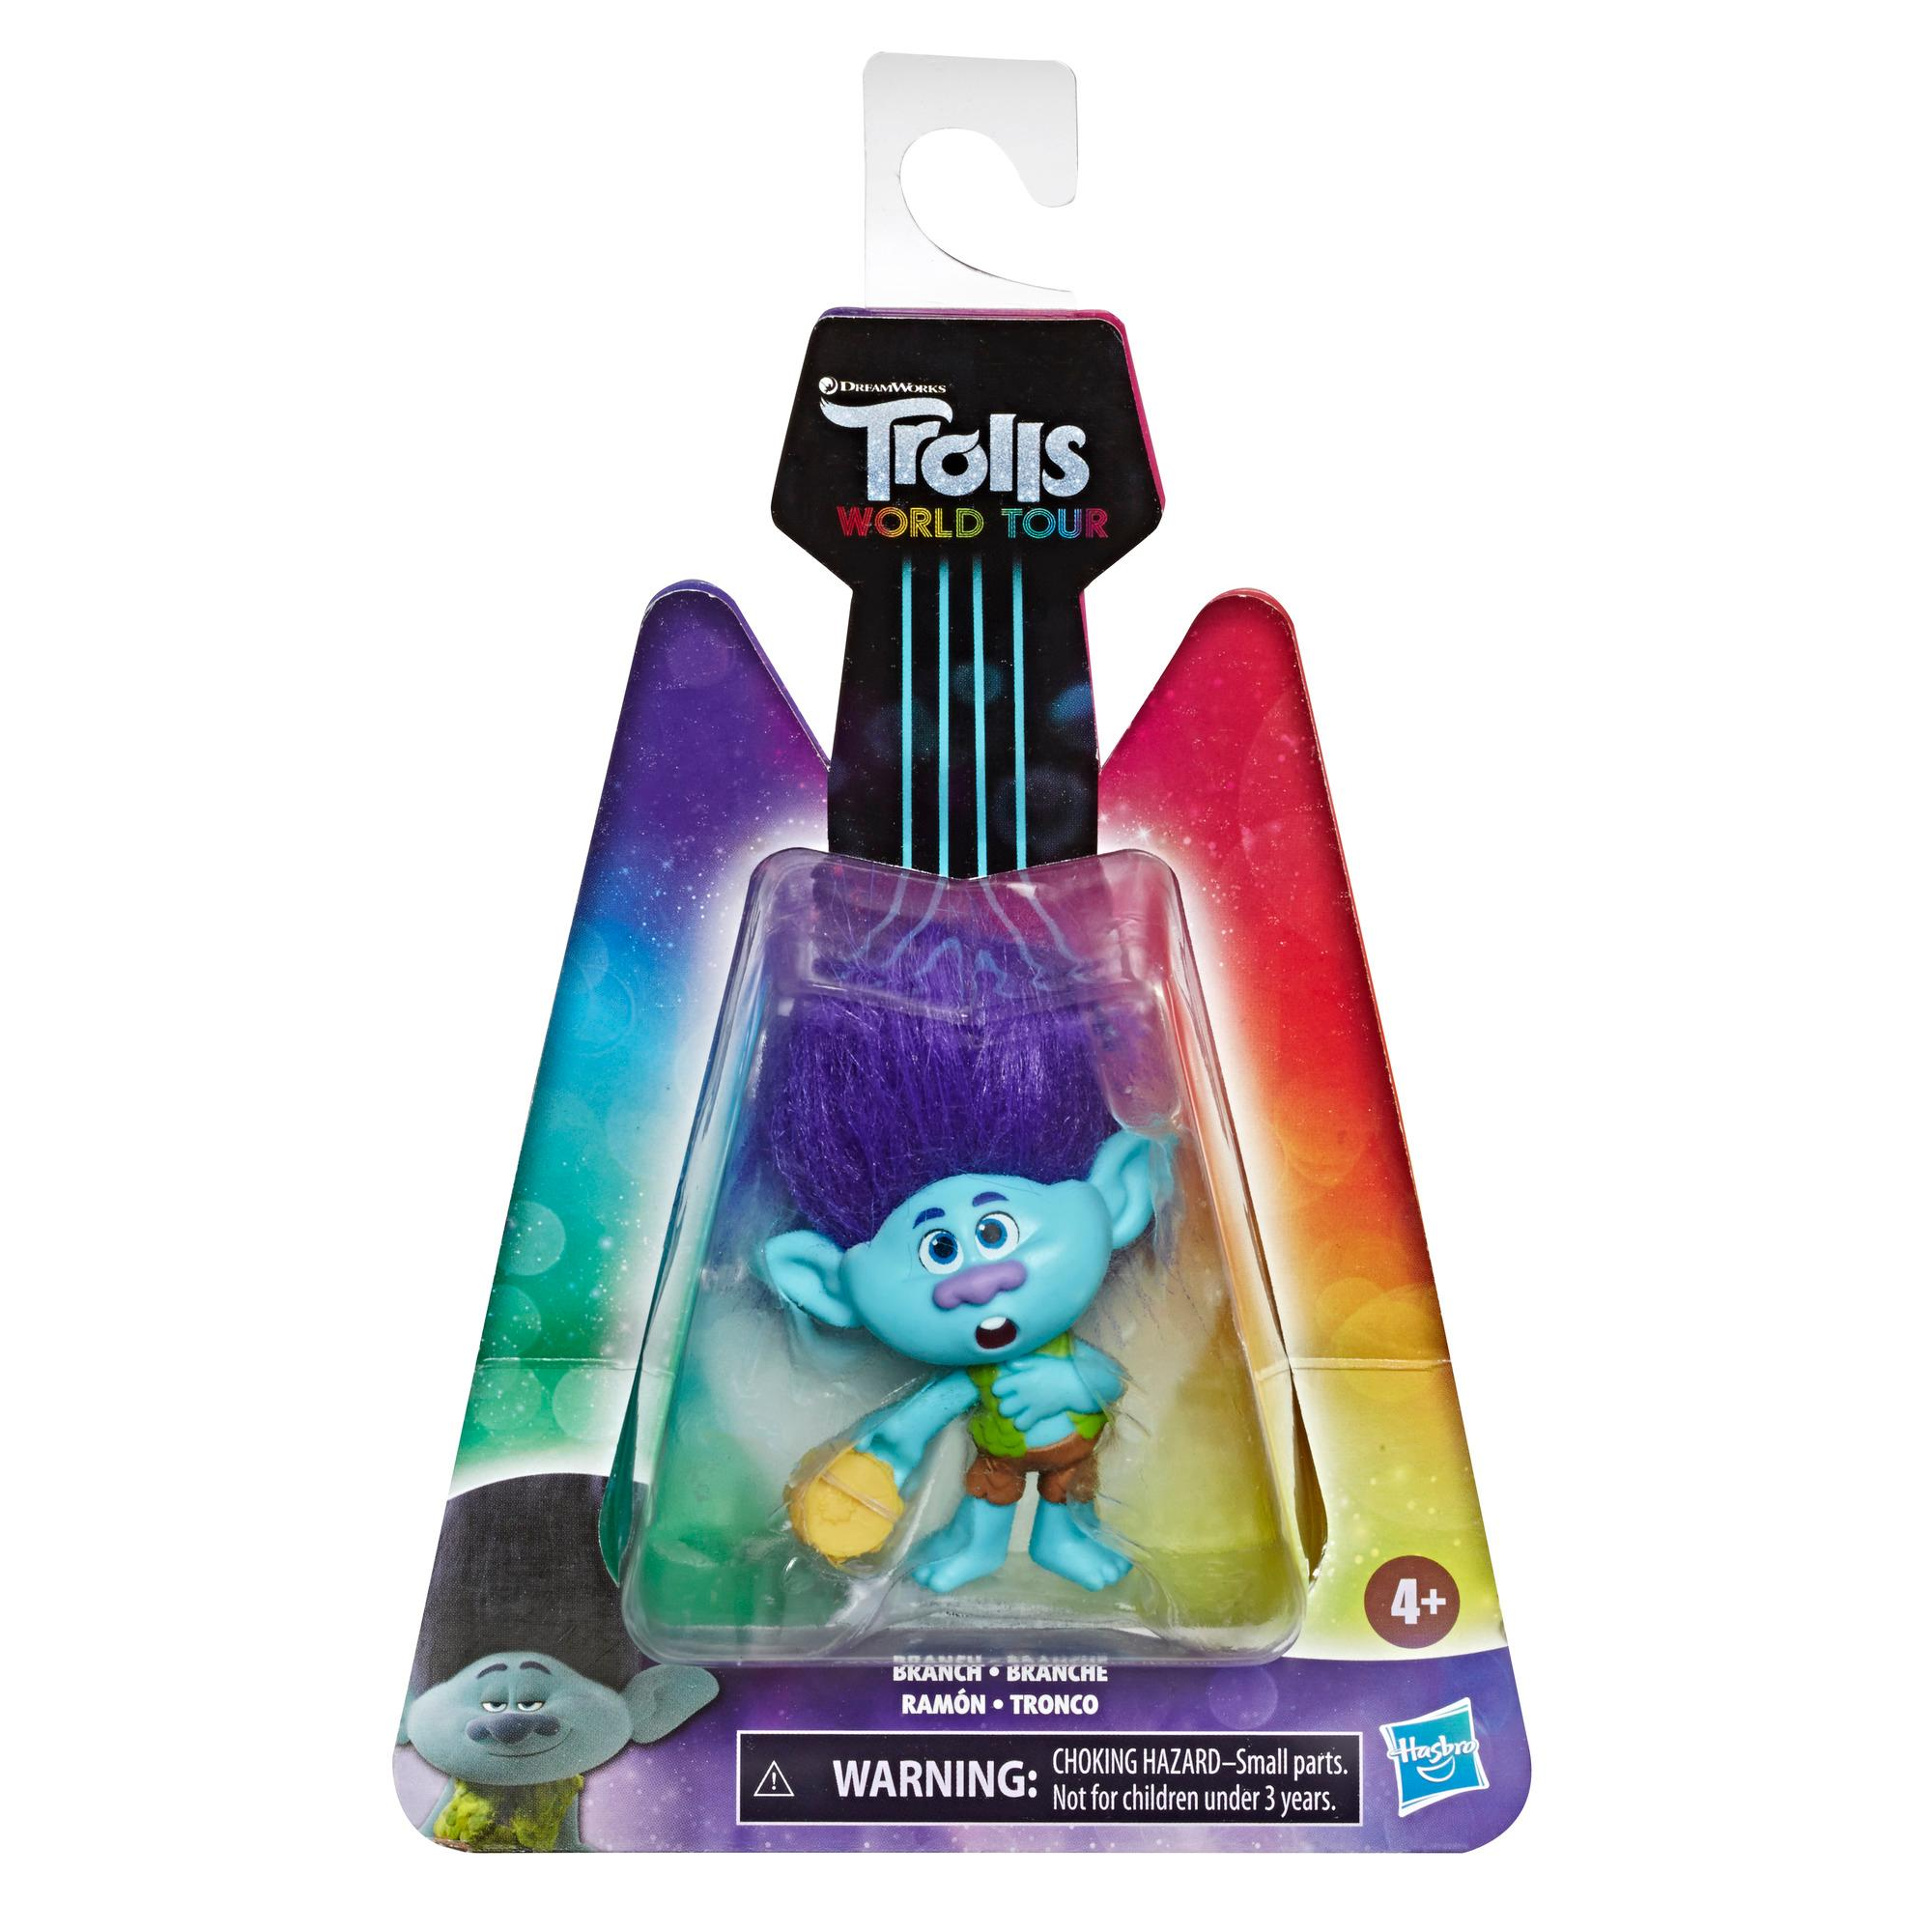 DreamWorks Trolls World Tour Branch, Doll Figure with Tambourine Accessory, Toy Inspired by the Movie Trolls World Tour